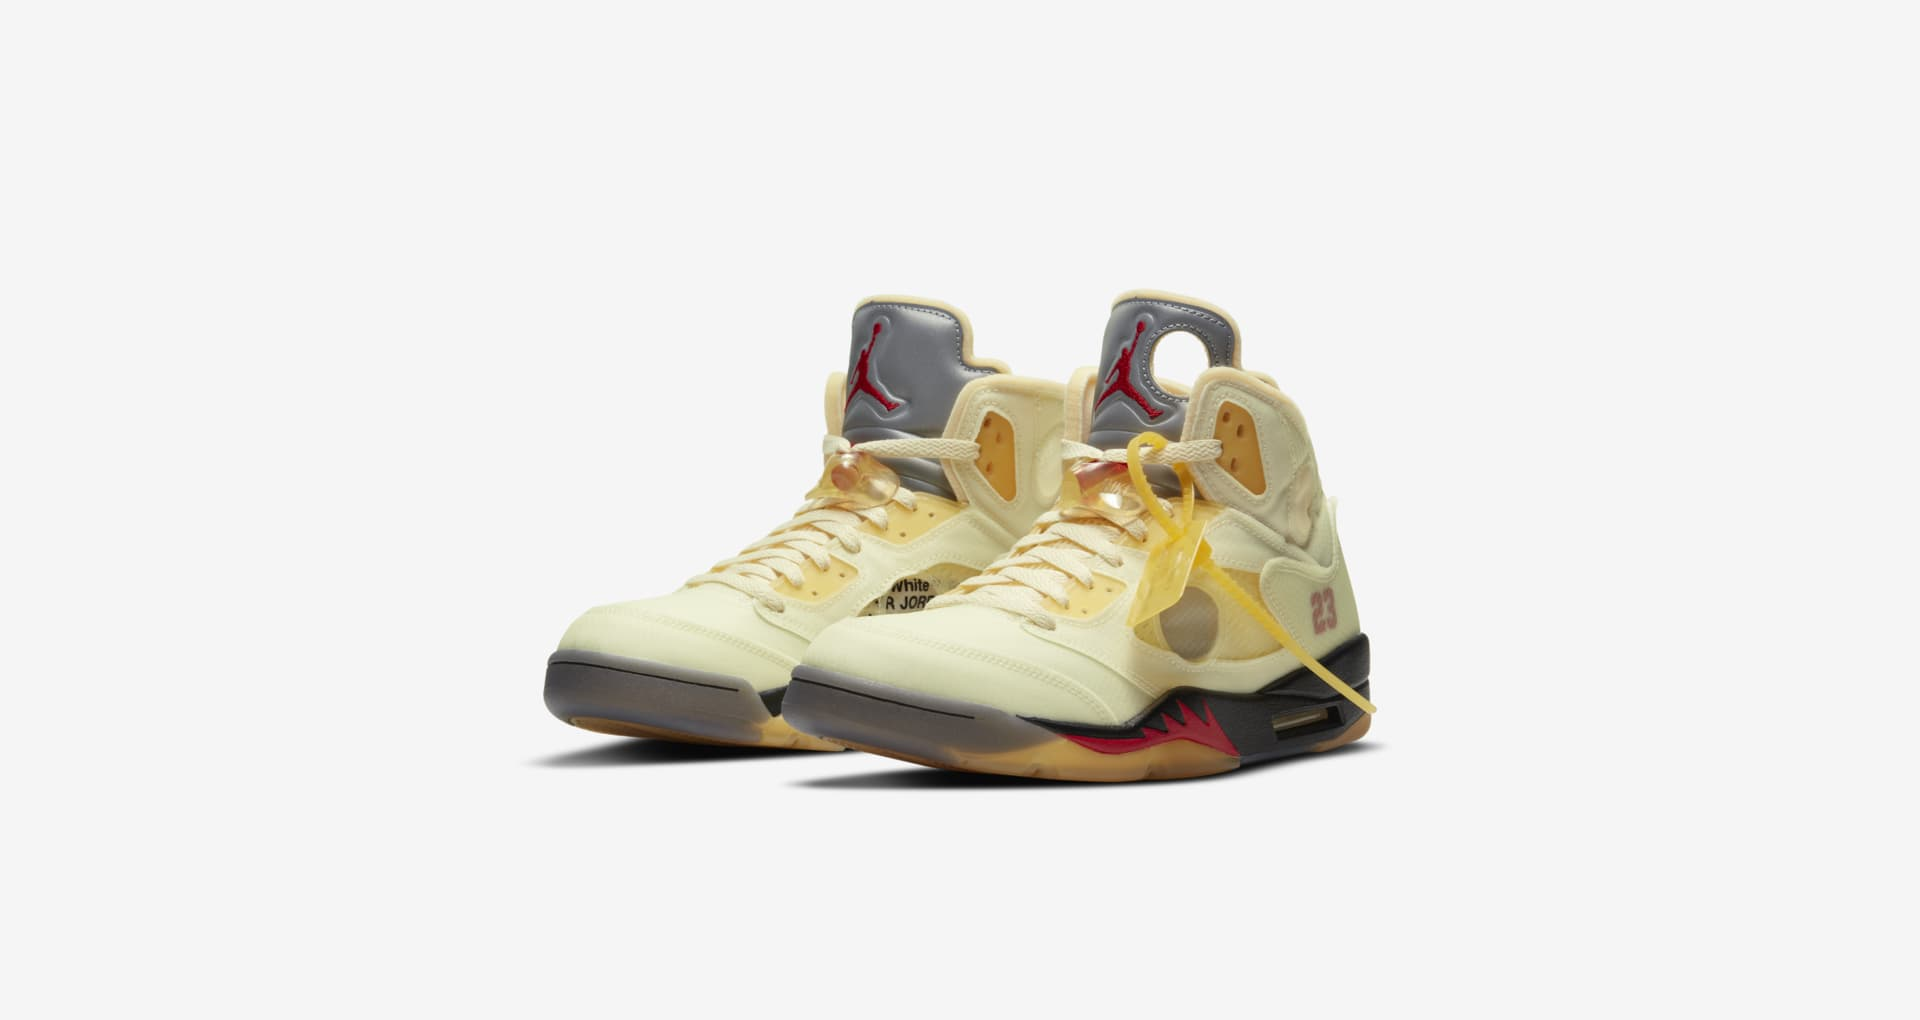 02-air-jordan-5-off-white-sail-dh8565-100